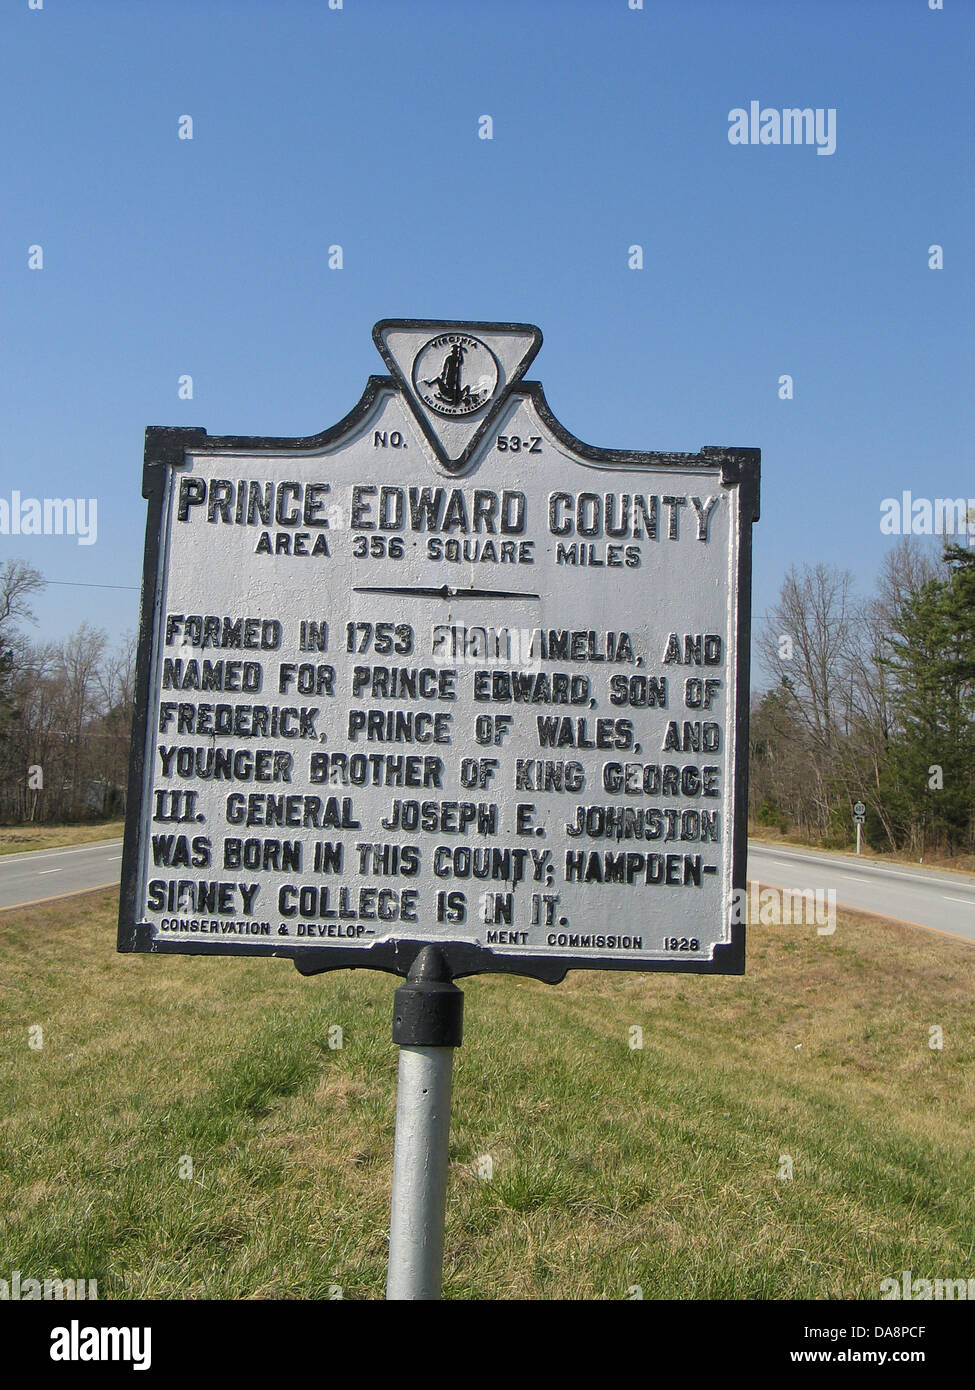 PRINCE EDWARD COUNTY Area 356 Square Miles Formed in 1753 from Amelia, and named for Prince Edward, son of Frederick, - Stock Image